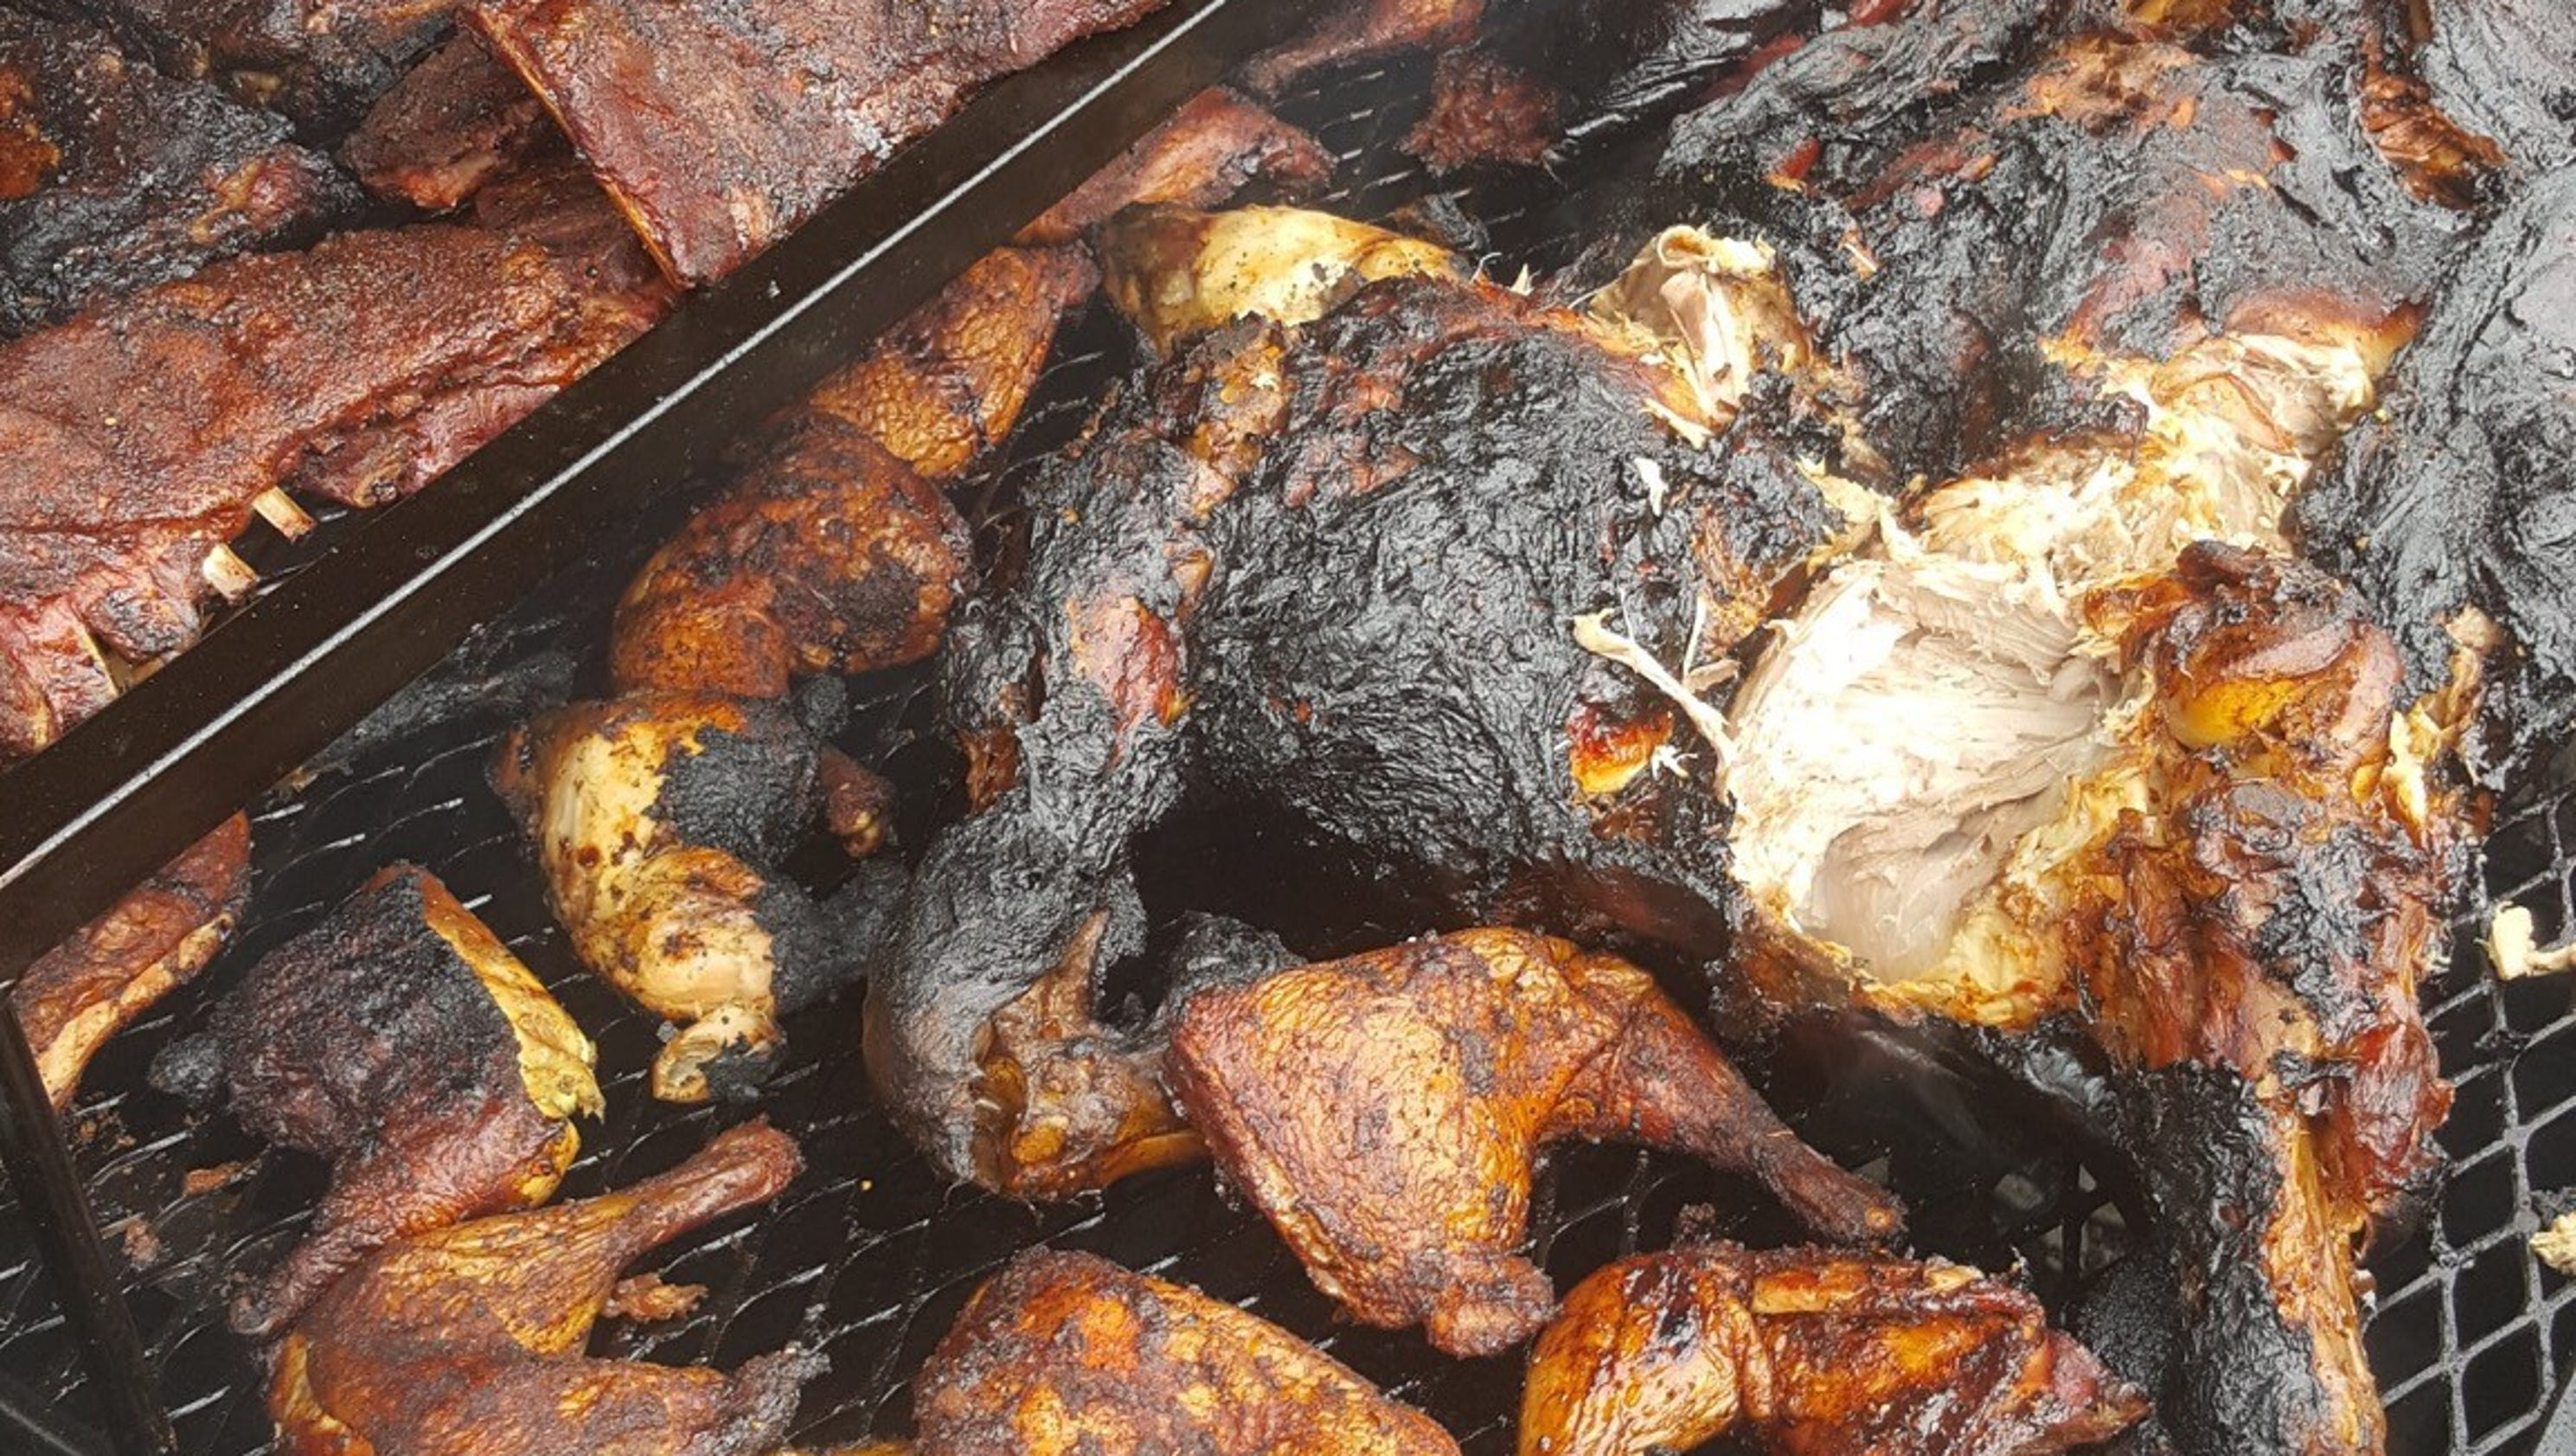 Veterans eat free at Red, White and Que pig roast in Kearny - photo#15